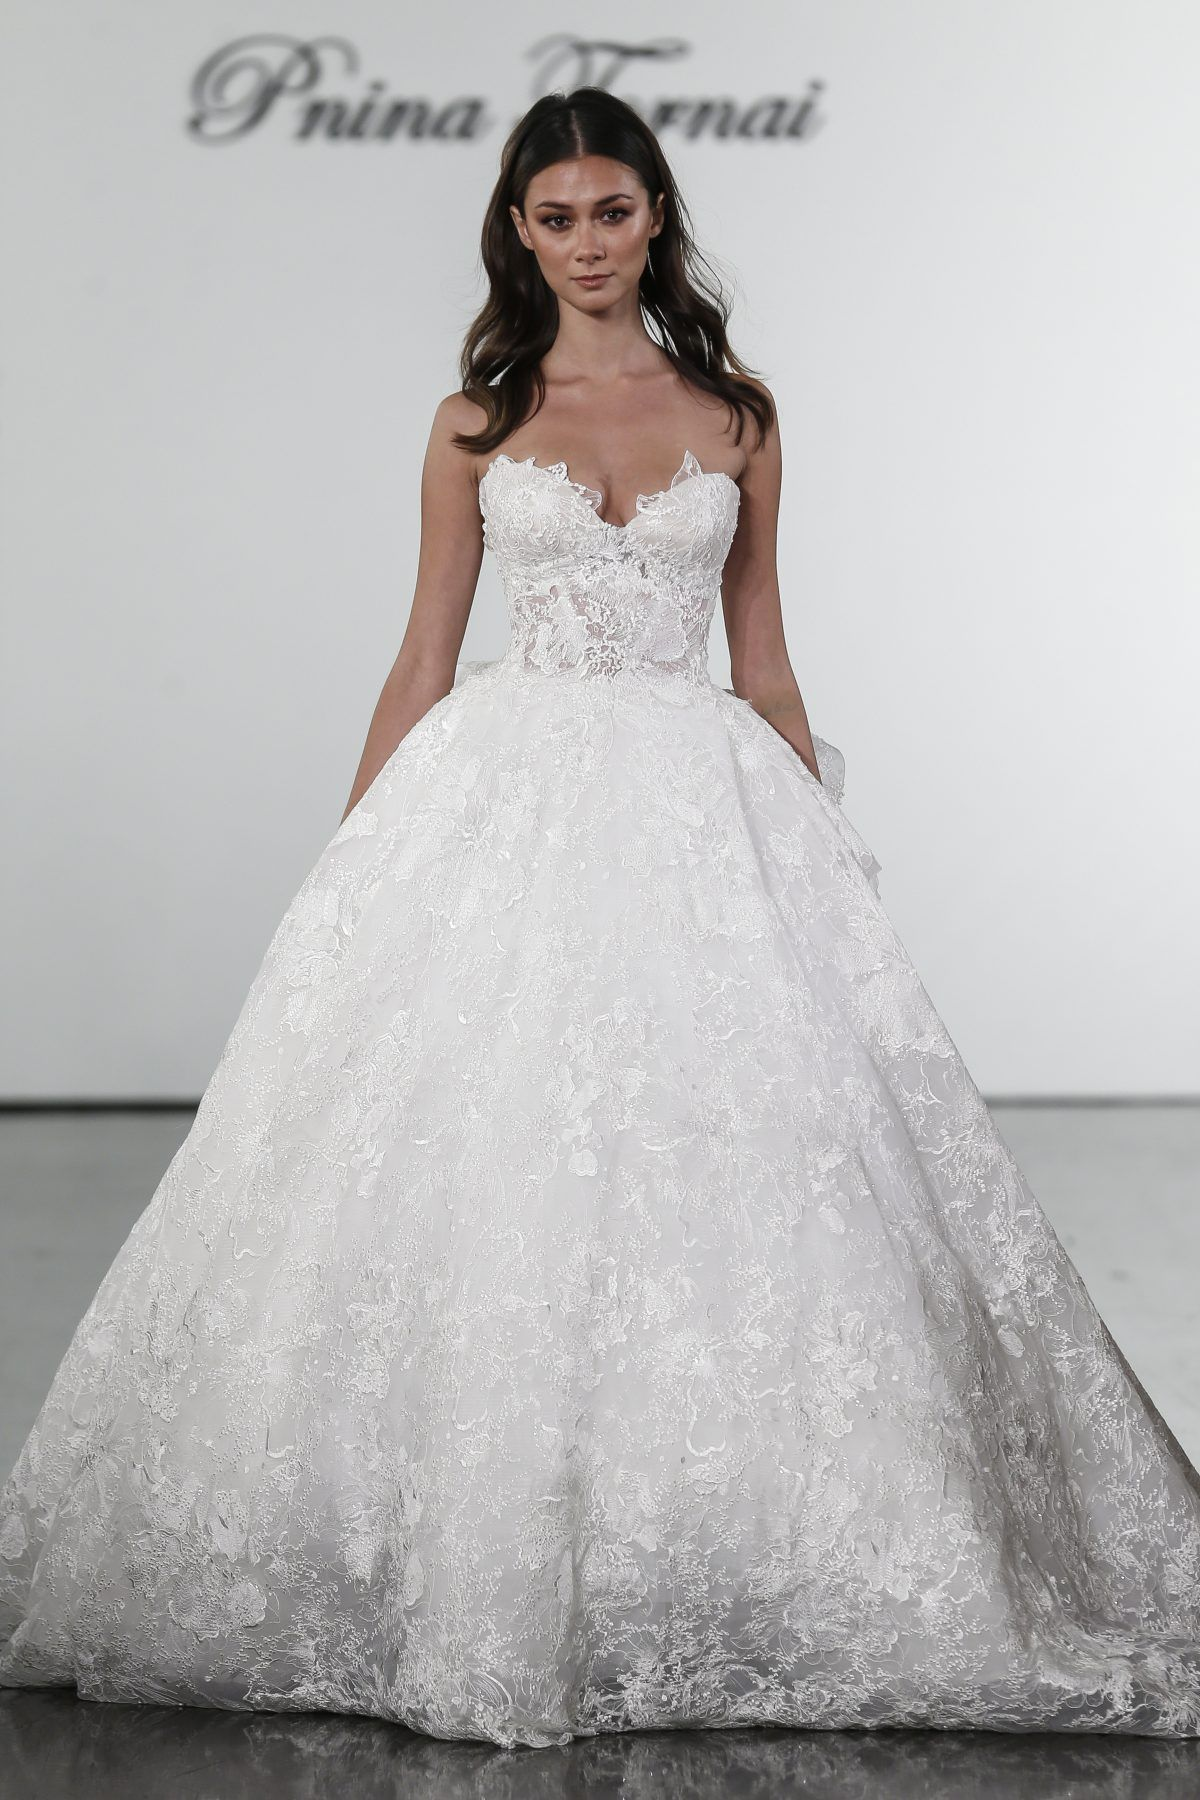 Sweetheart Floral Lace Ball Gown Wedding Dress Pnina Tornai Style 4716 Pnina Tornai Wedding Dress Pnina Tornai Ball Gown Ball Gowns Wedding